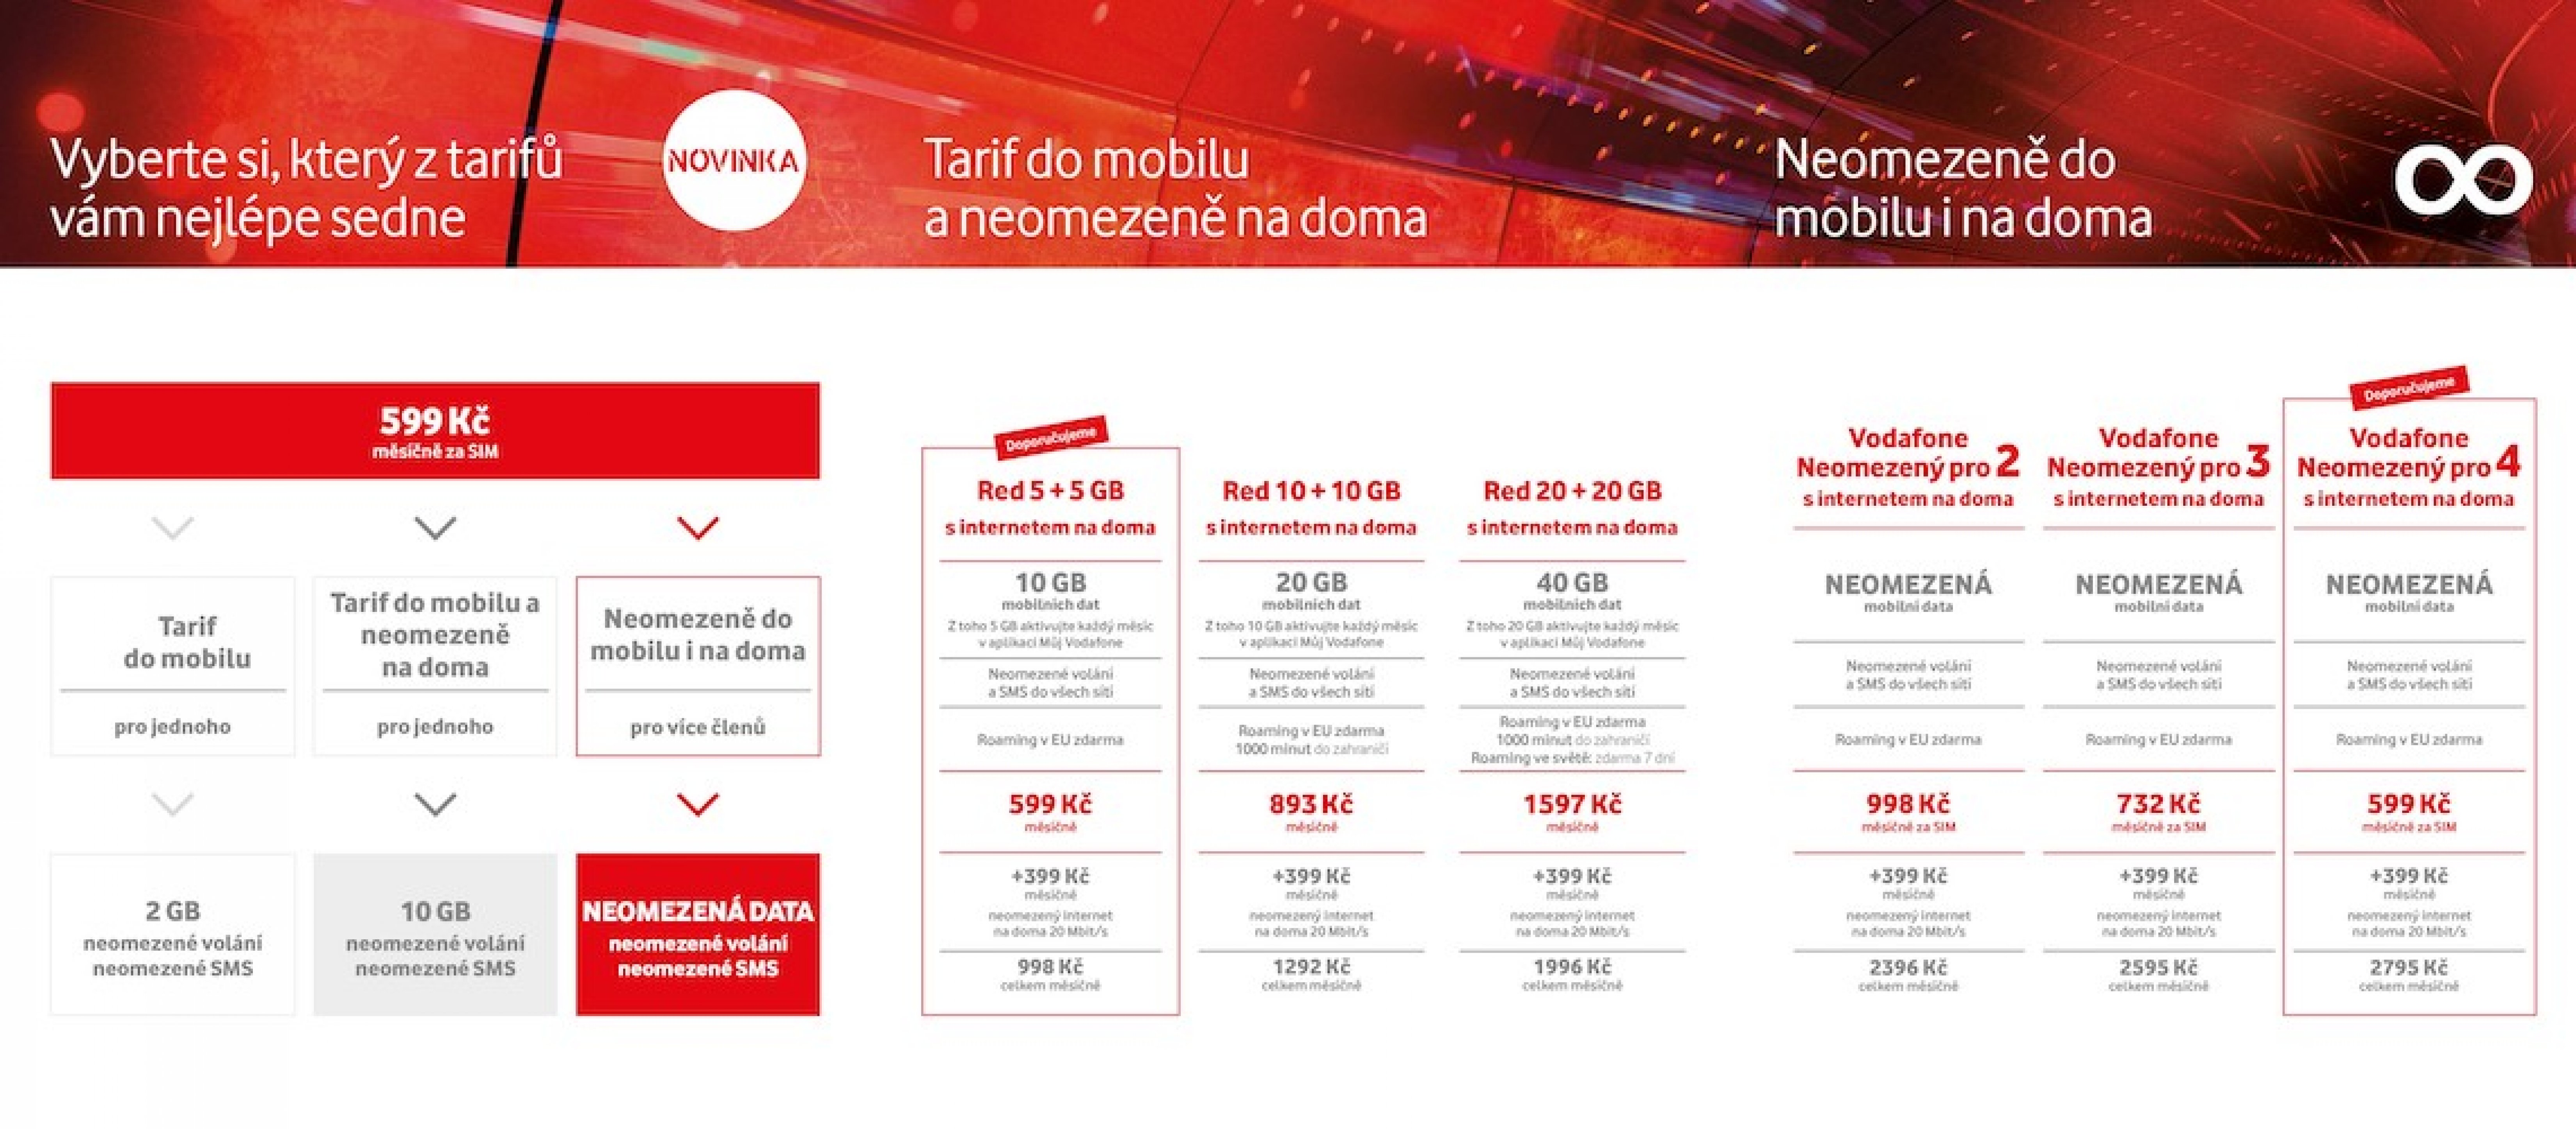 Vodafone Czech Republic introduces unlimited data offer | Roaming